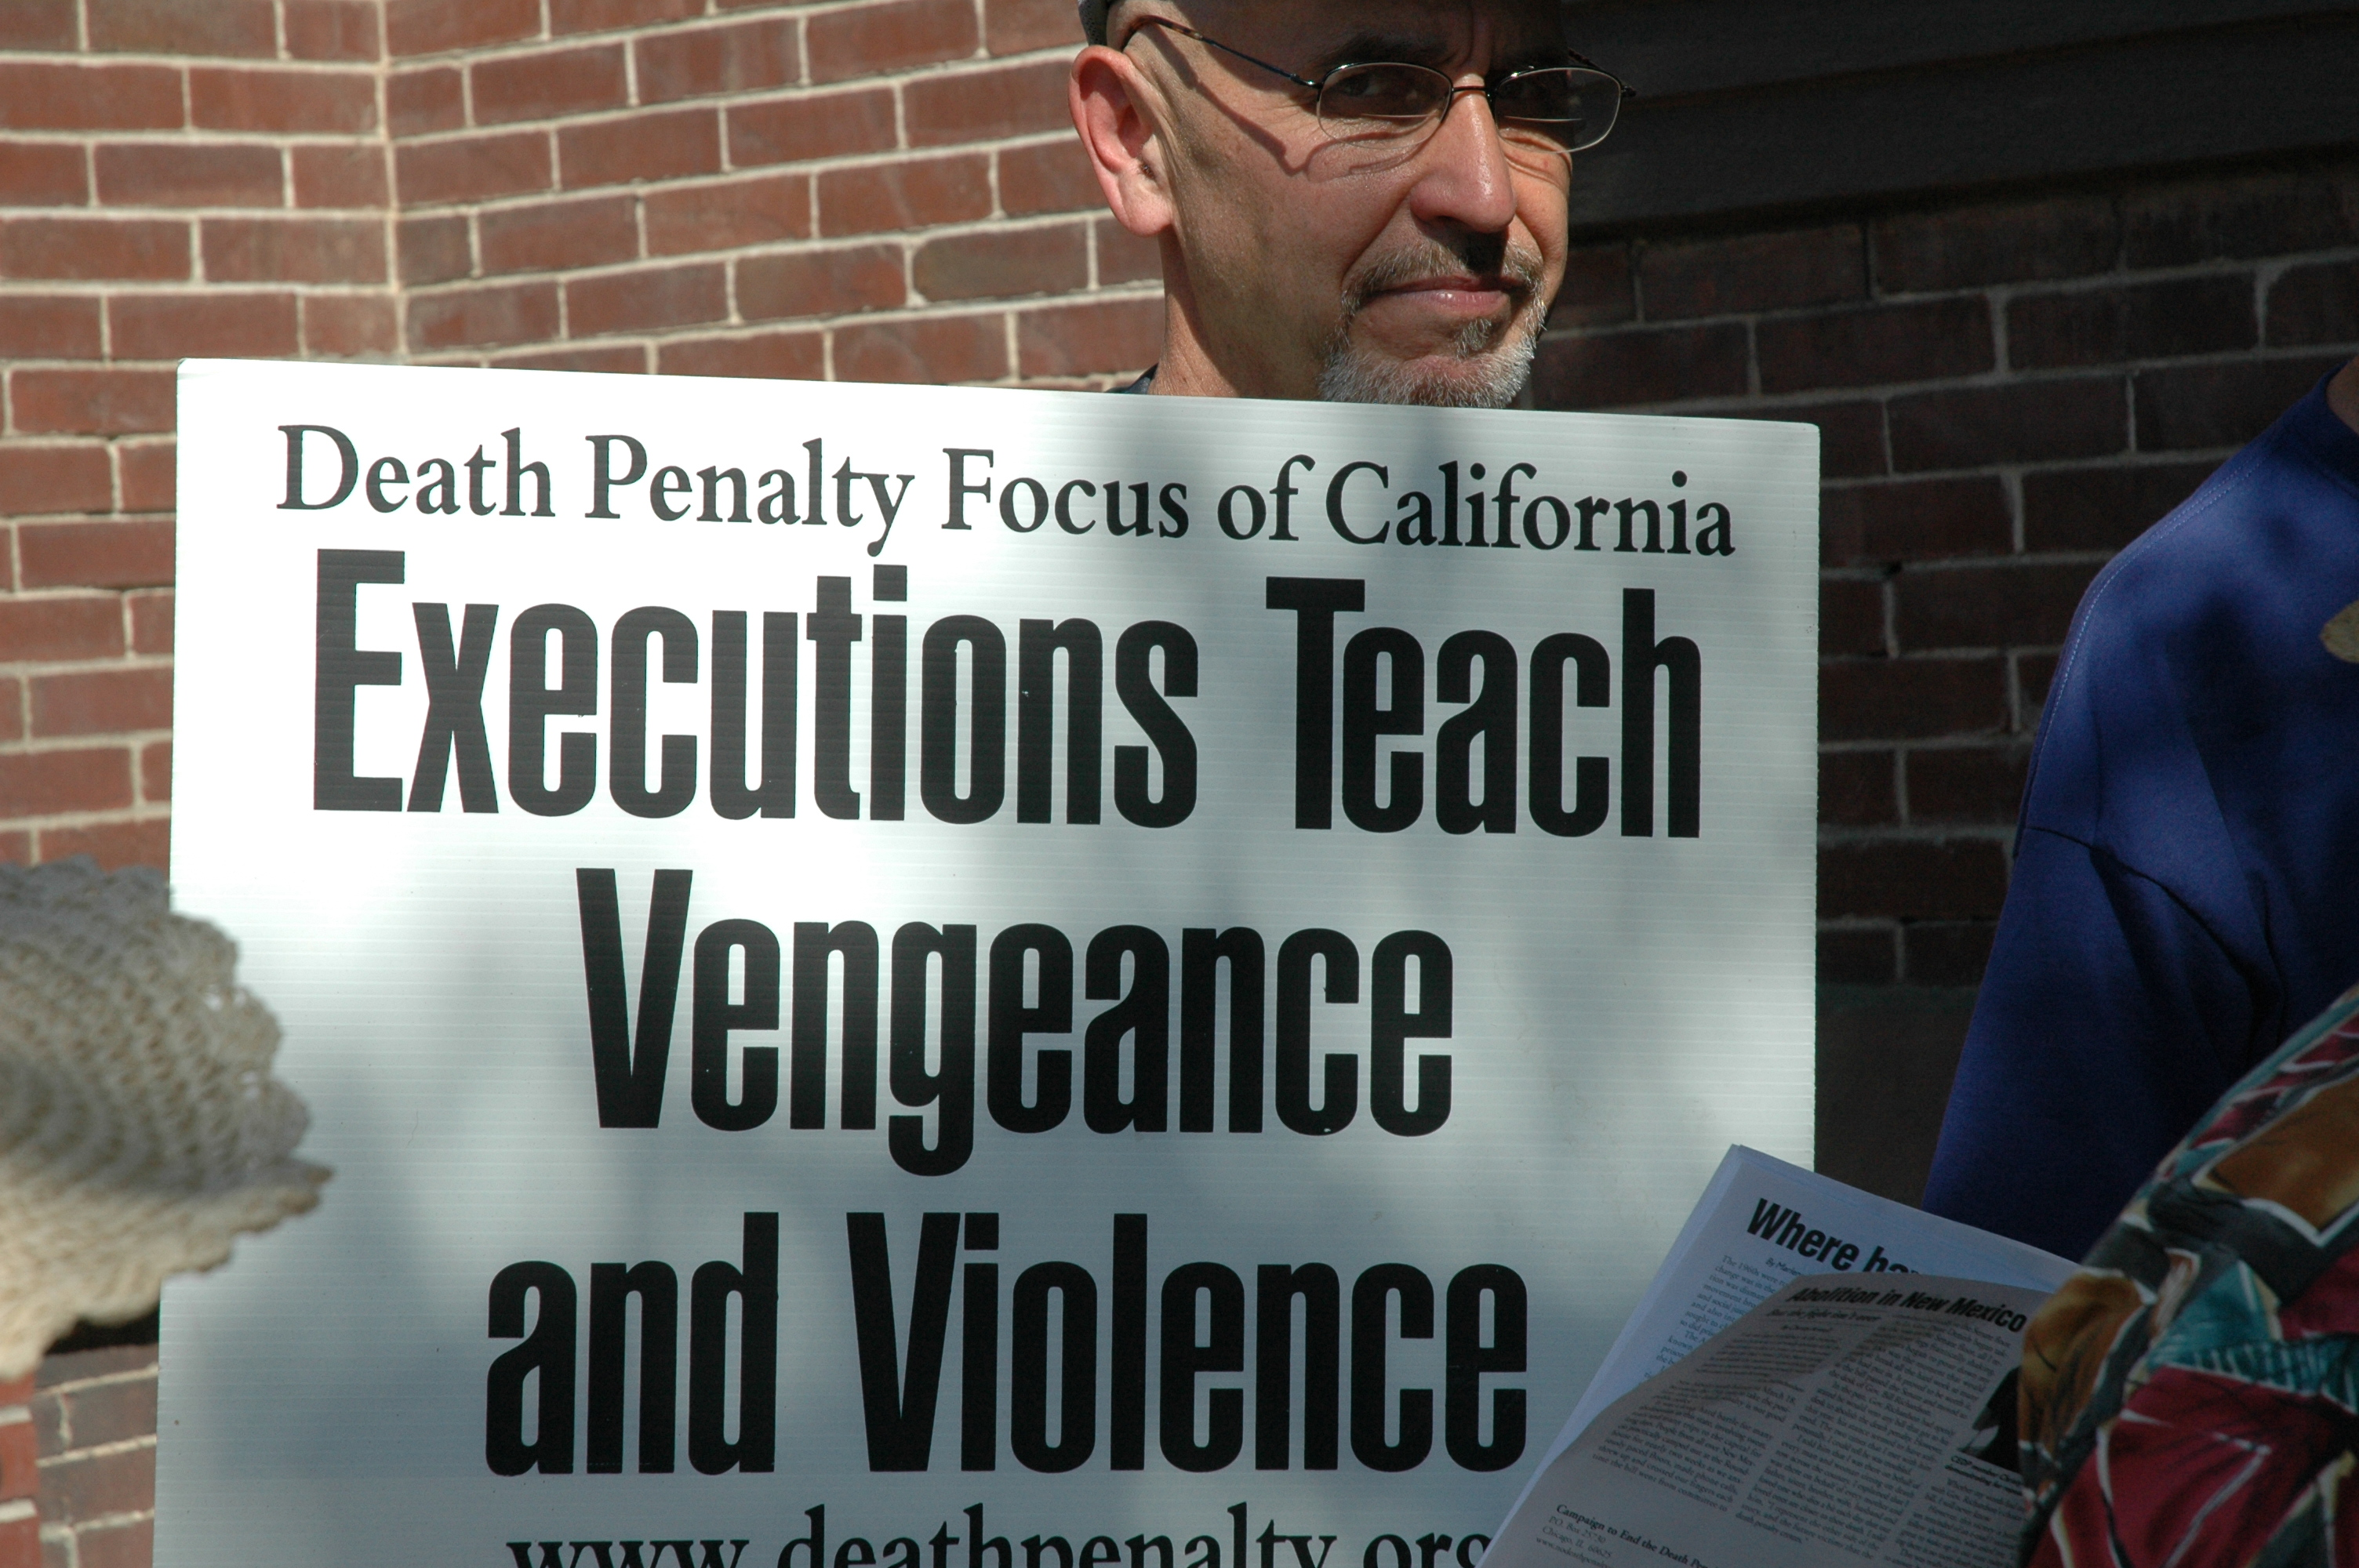 dead man walking death penalty essay The death penalty and dead man walking - martin miesler - presentation / essay (pre-university) - english - discussion and essays - publish your bachelor's or master.